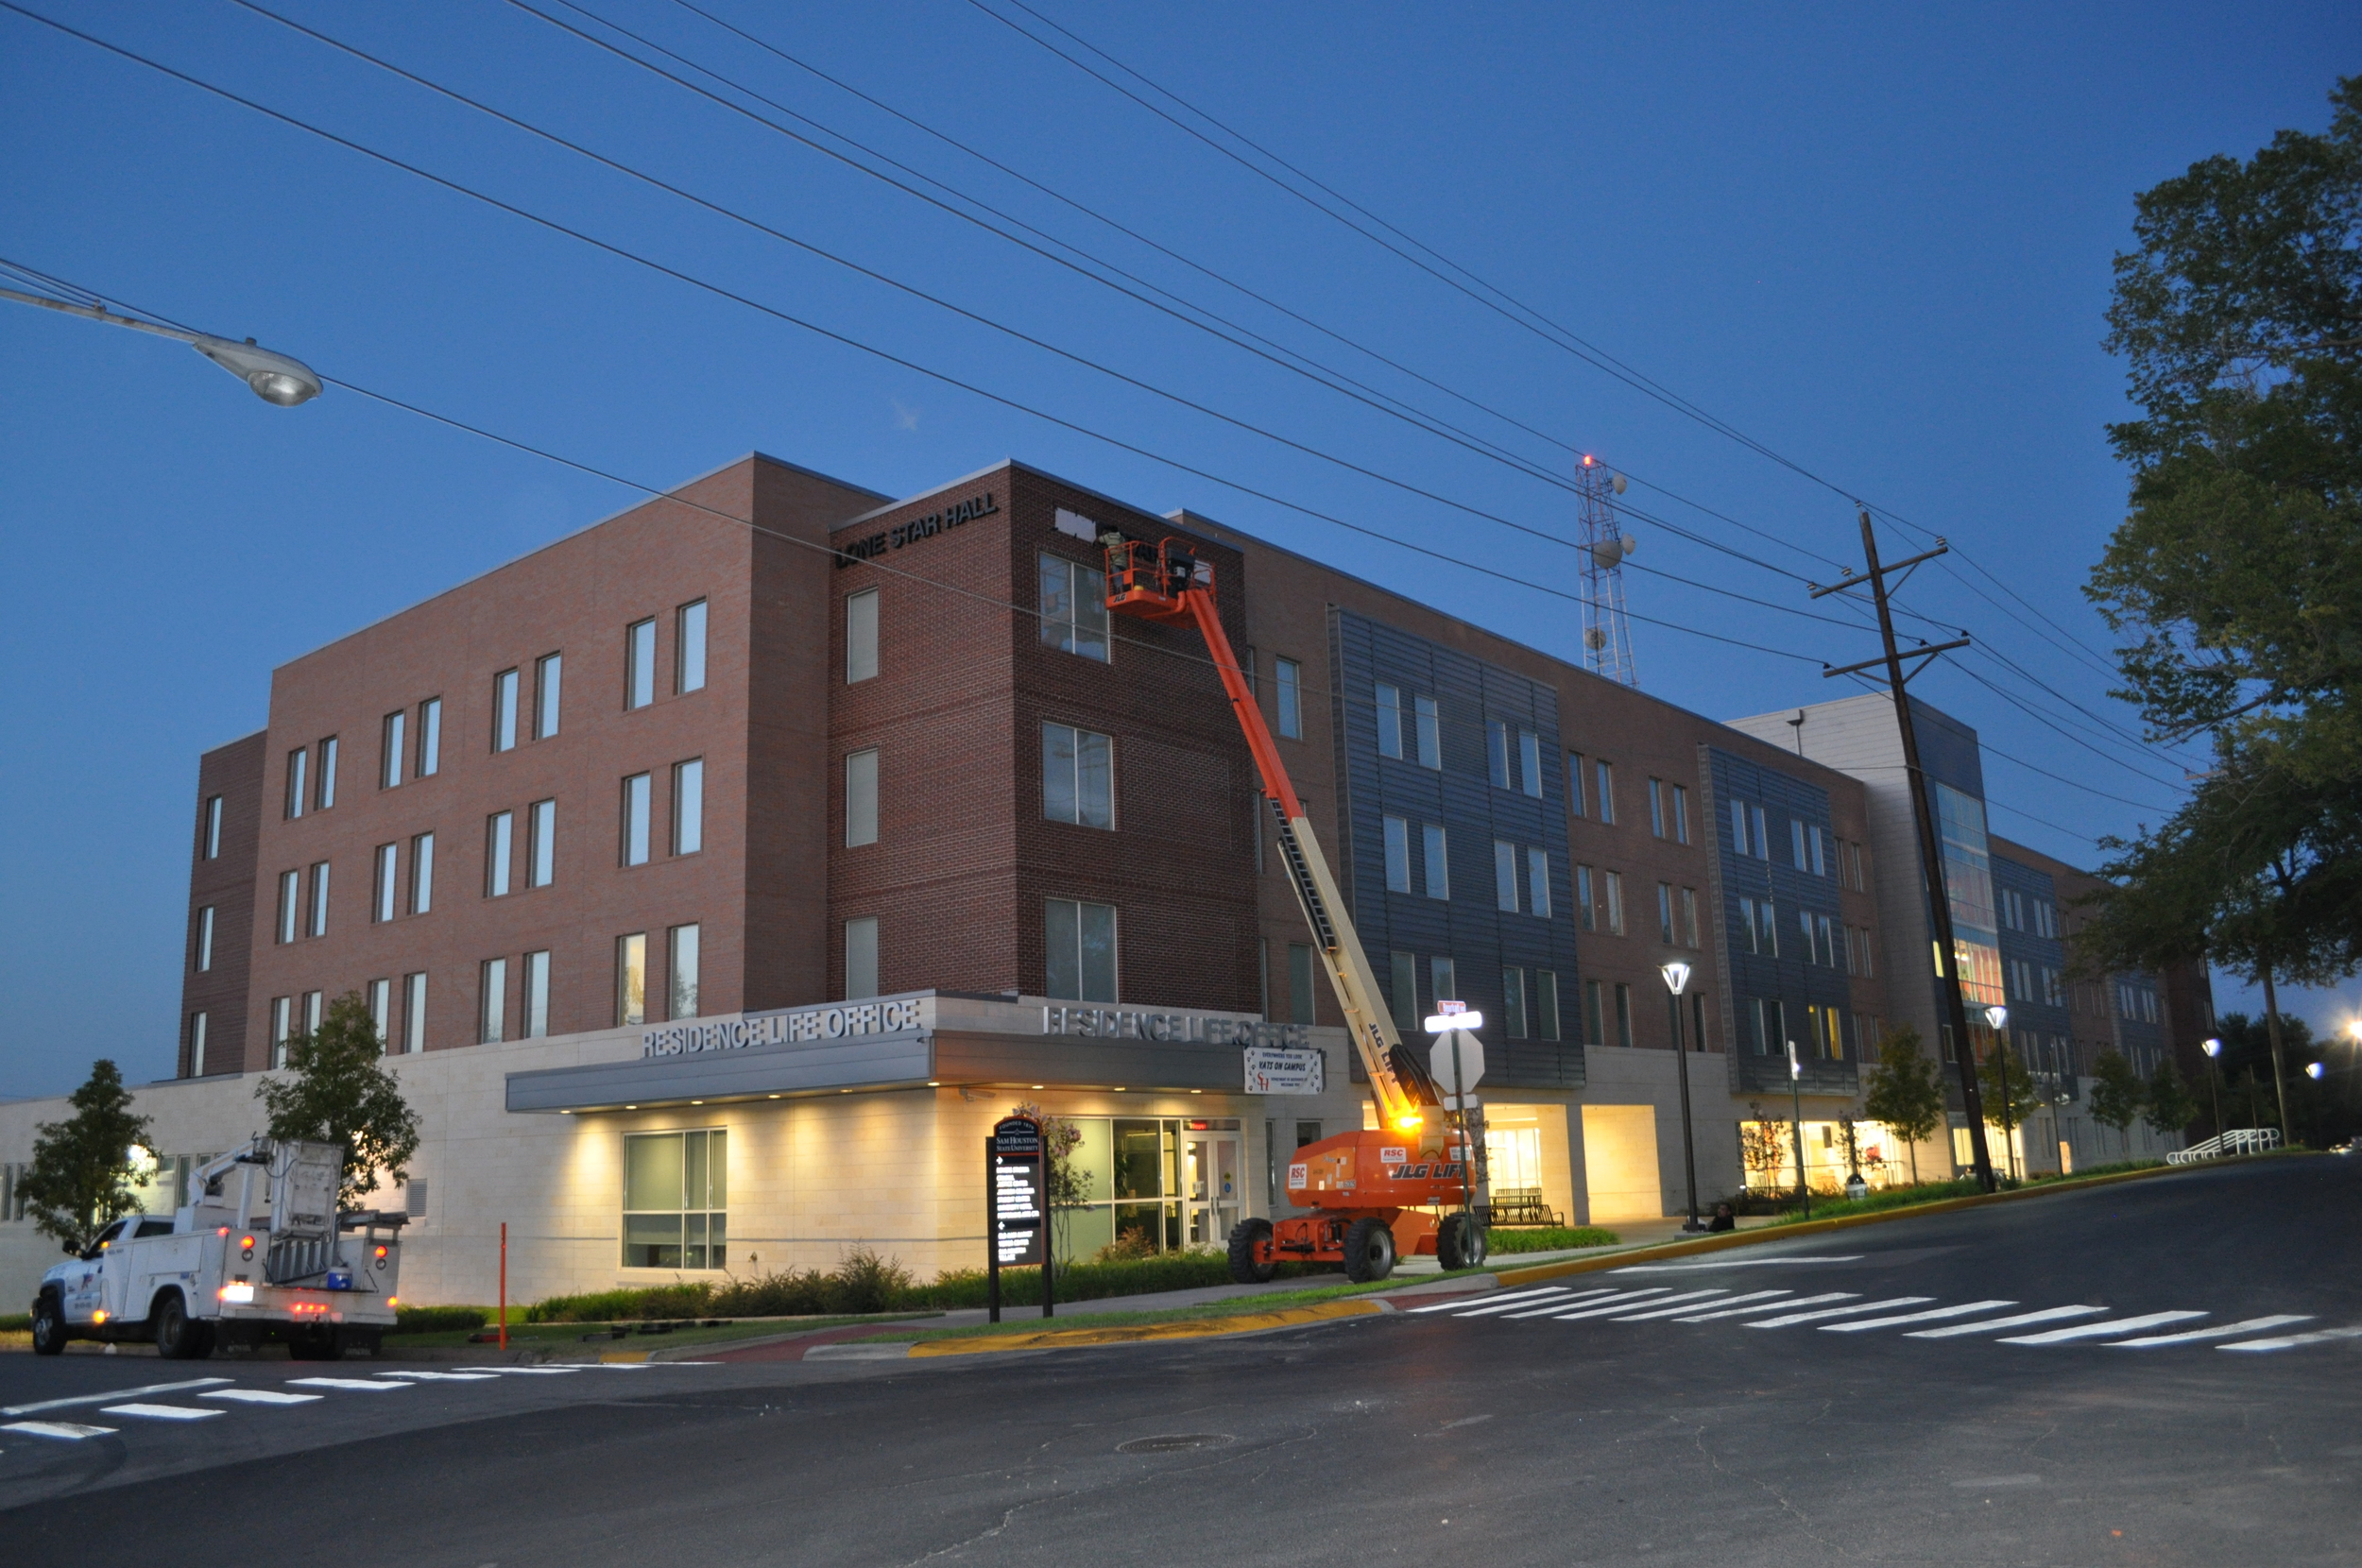 "<font size=""4"" color=#0c0d2d><b>Sam Houston State Residence Hall</b></font>"